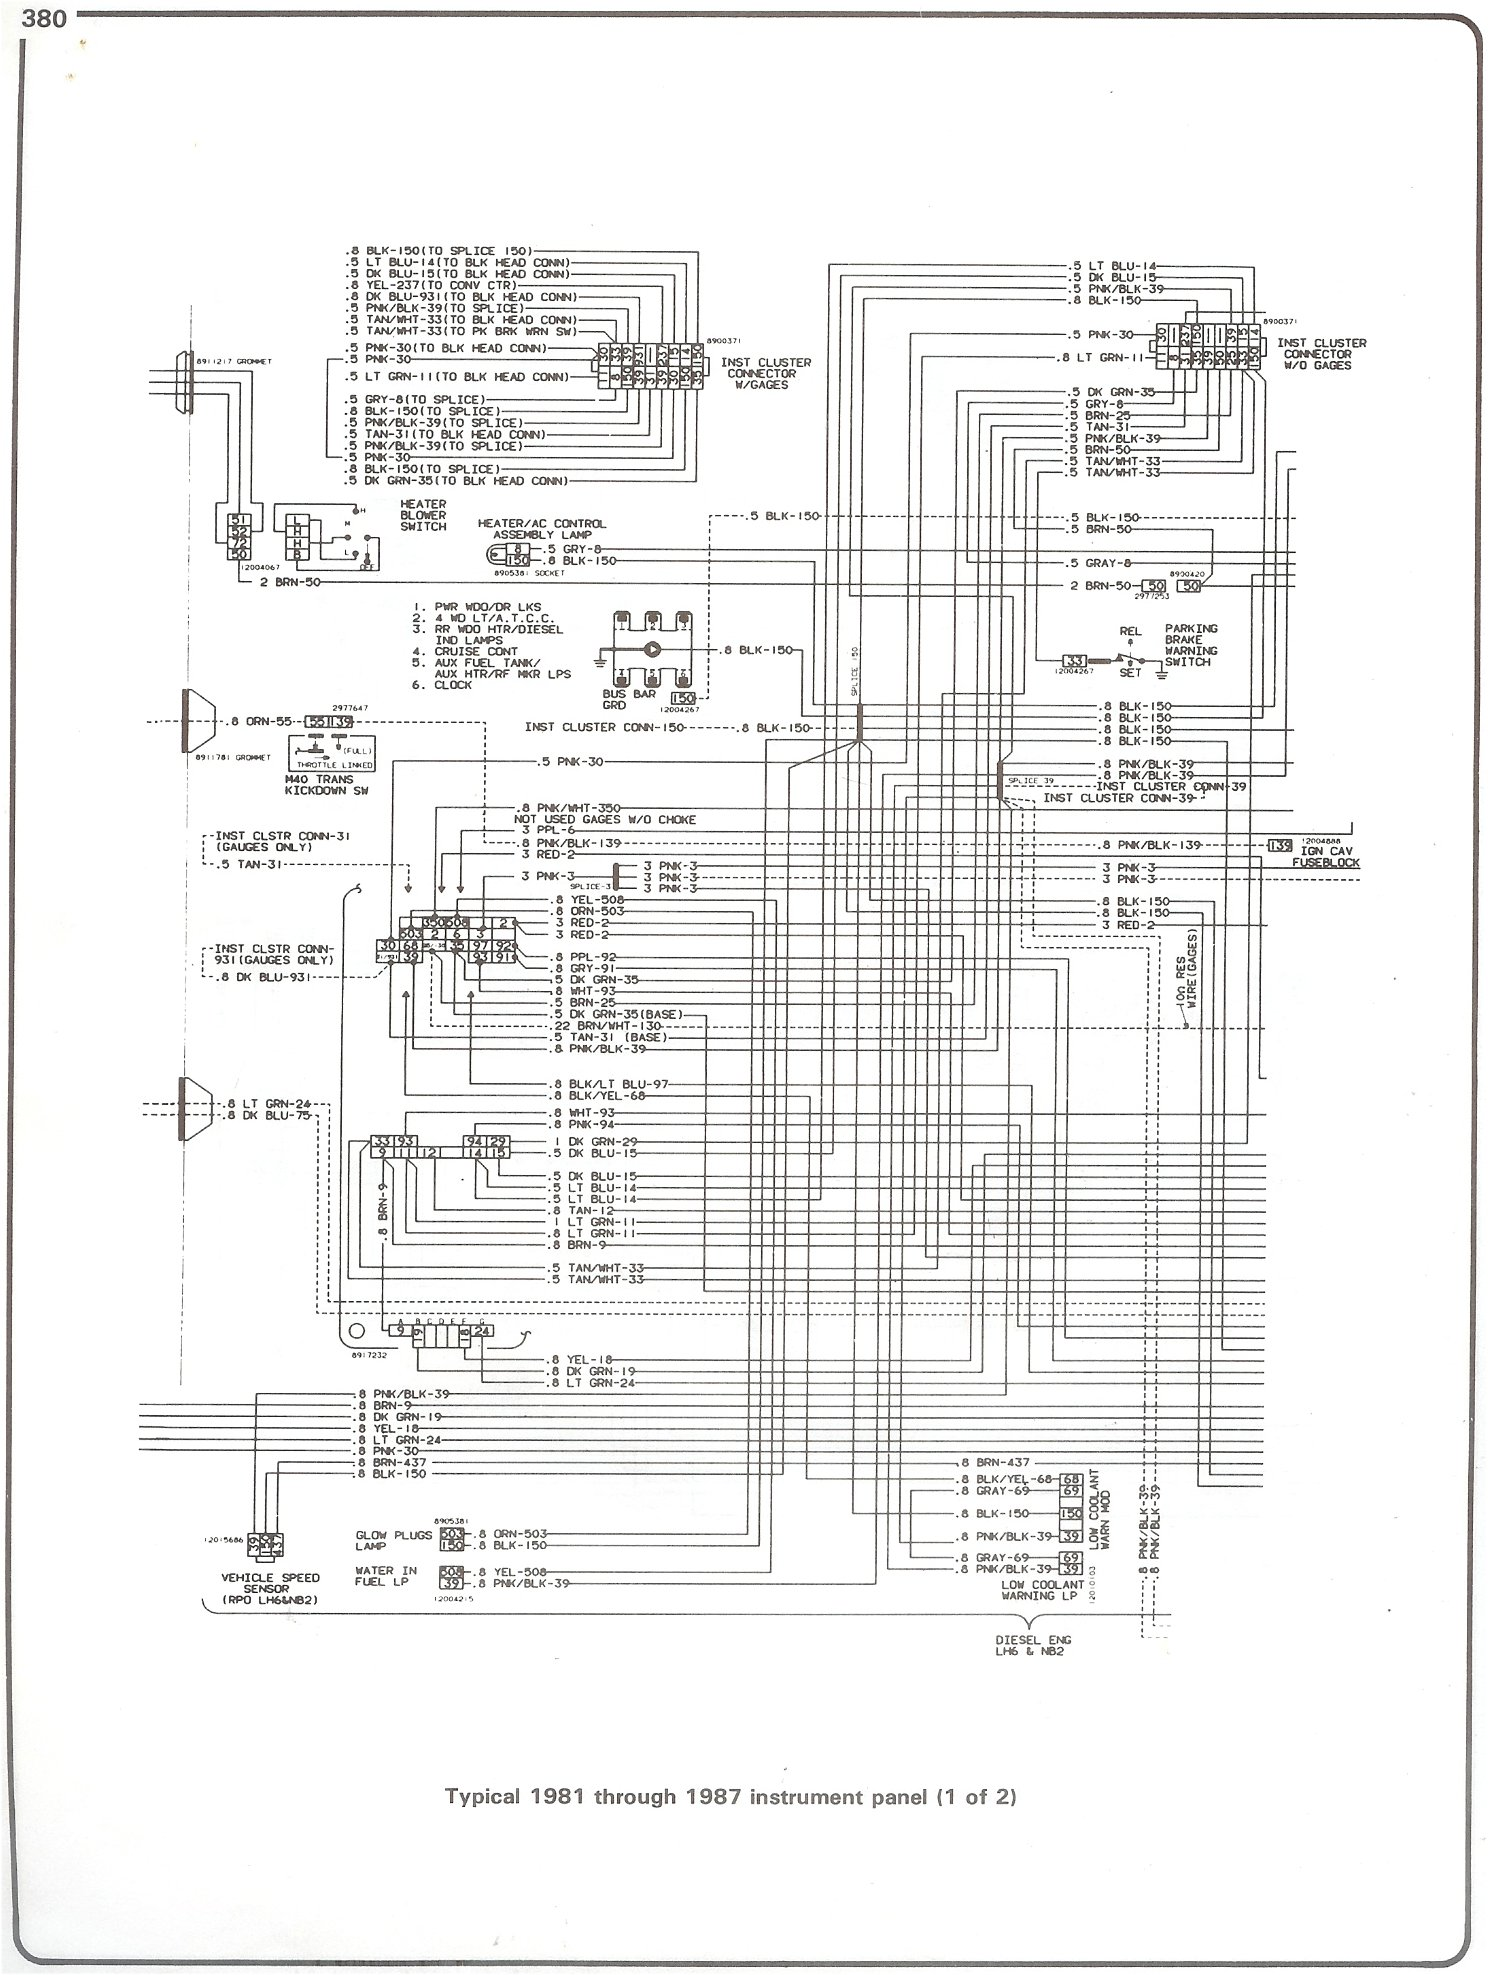 85 chevy s10 wiring diagram 85 wiring diagrams 81 87 instrument panel